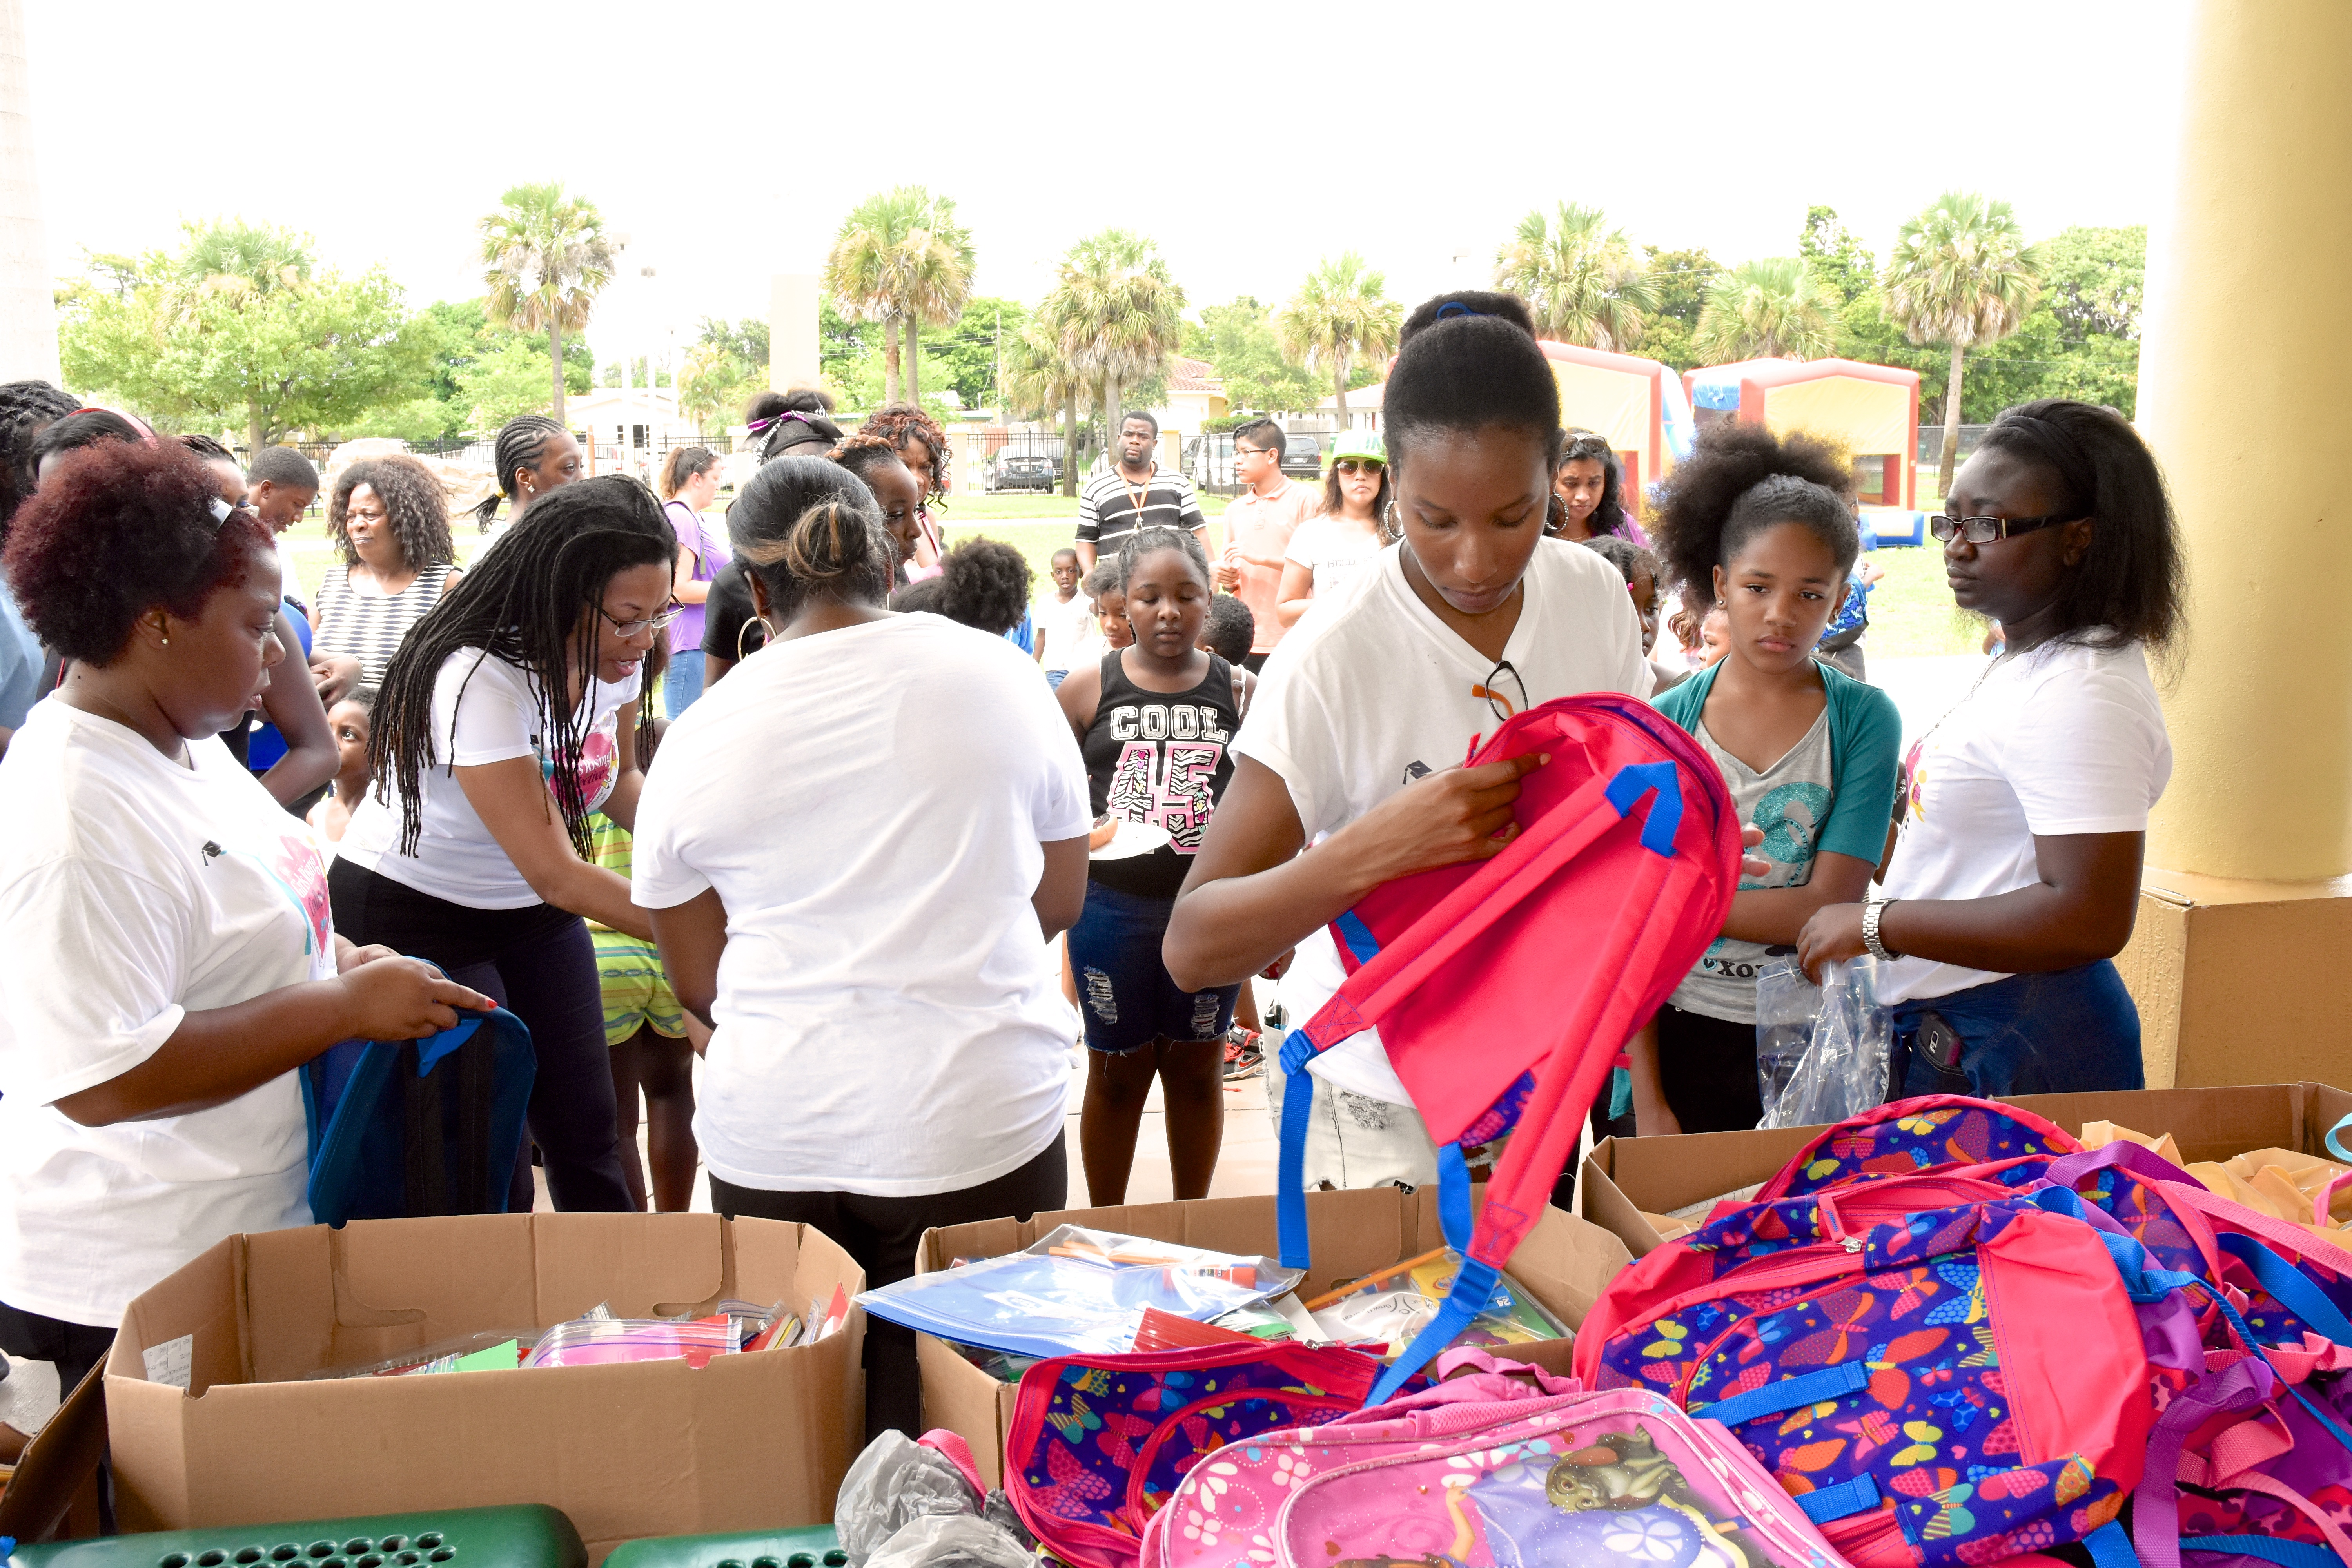 DSC 2747 - Community Give Back - Backpack-A-Thon 2015